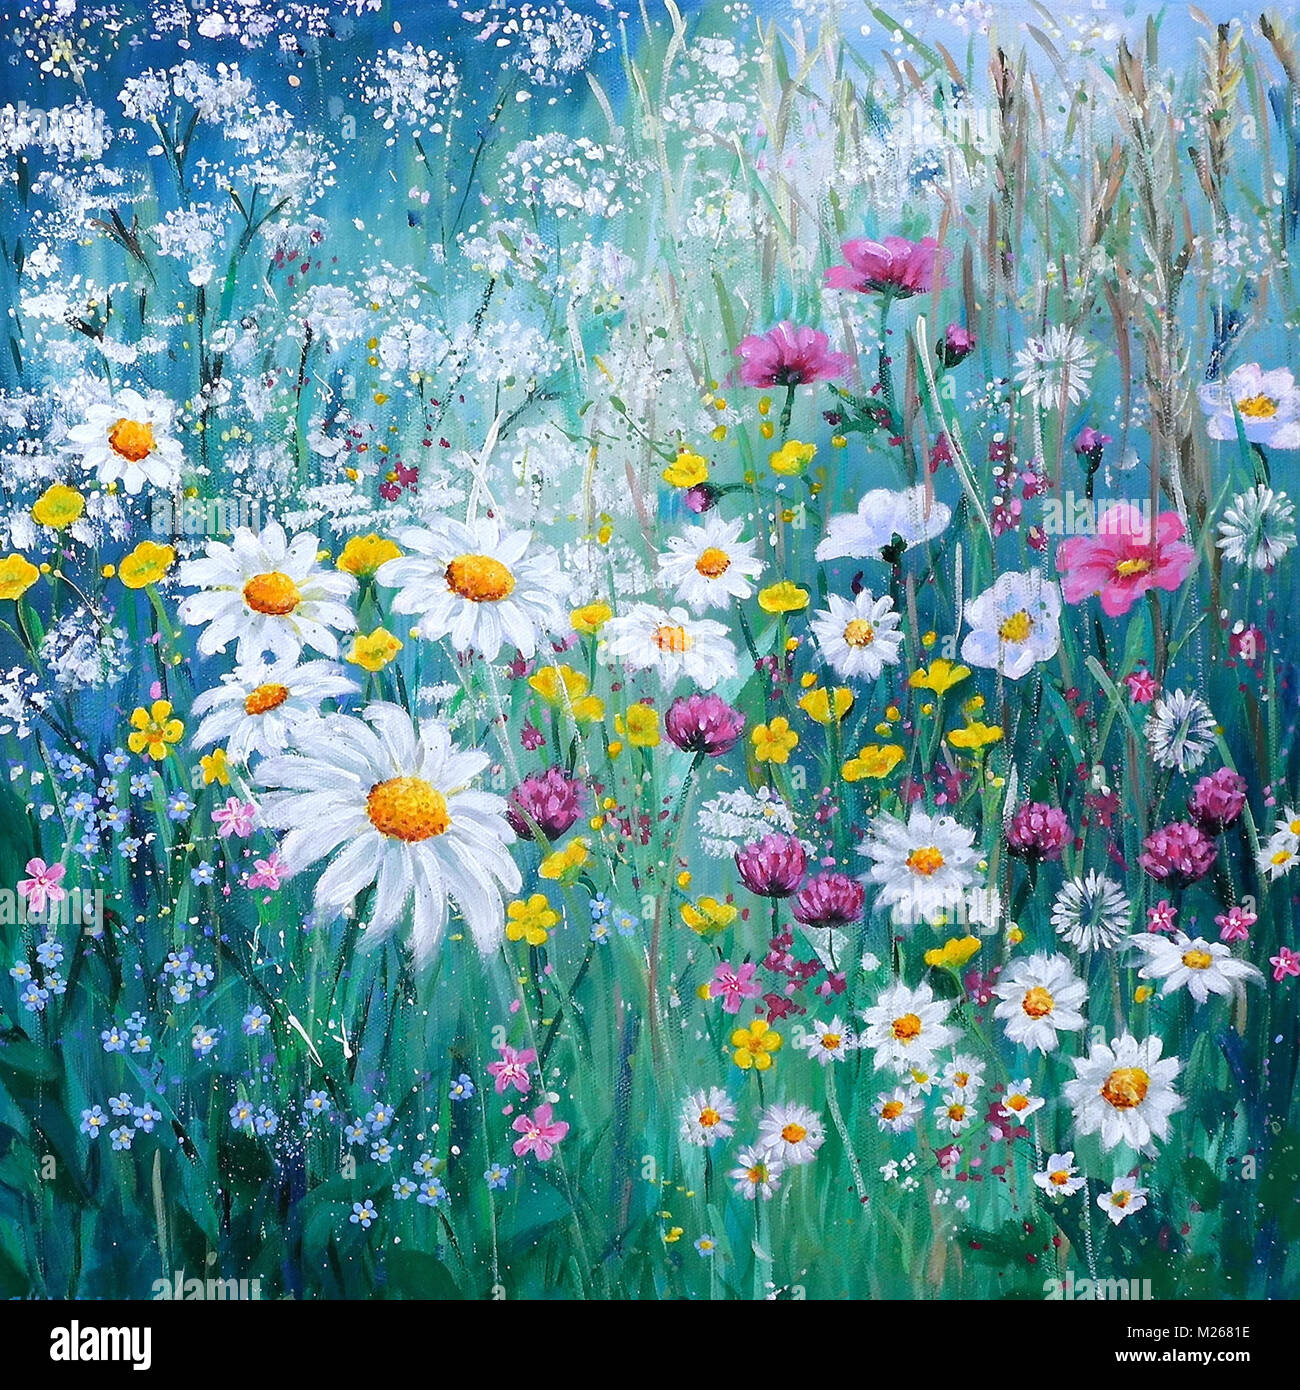 Painting Of Wildflower Meadow With Daisies Cow Parsley Clover And Stock Photo Alamy